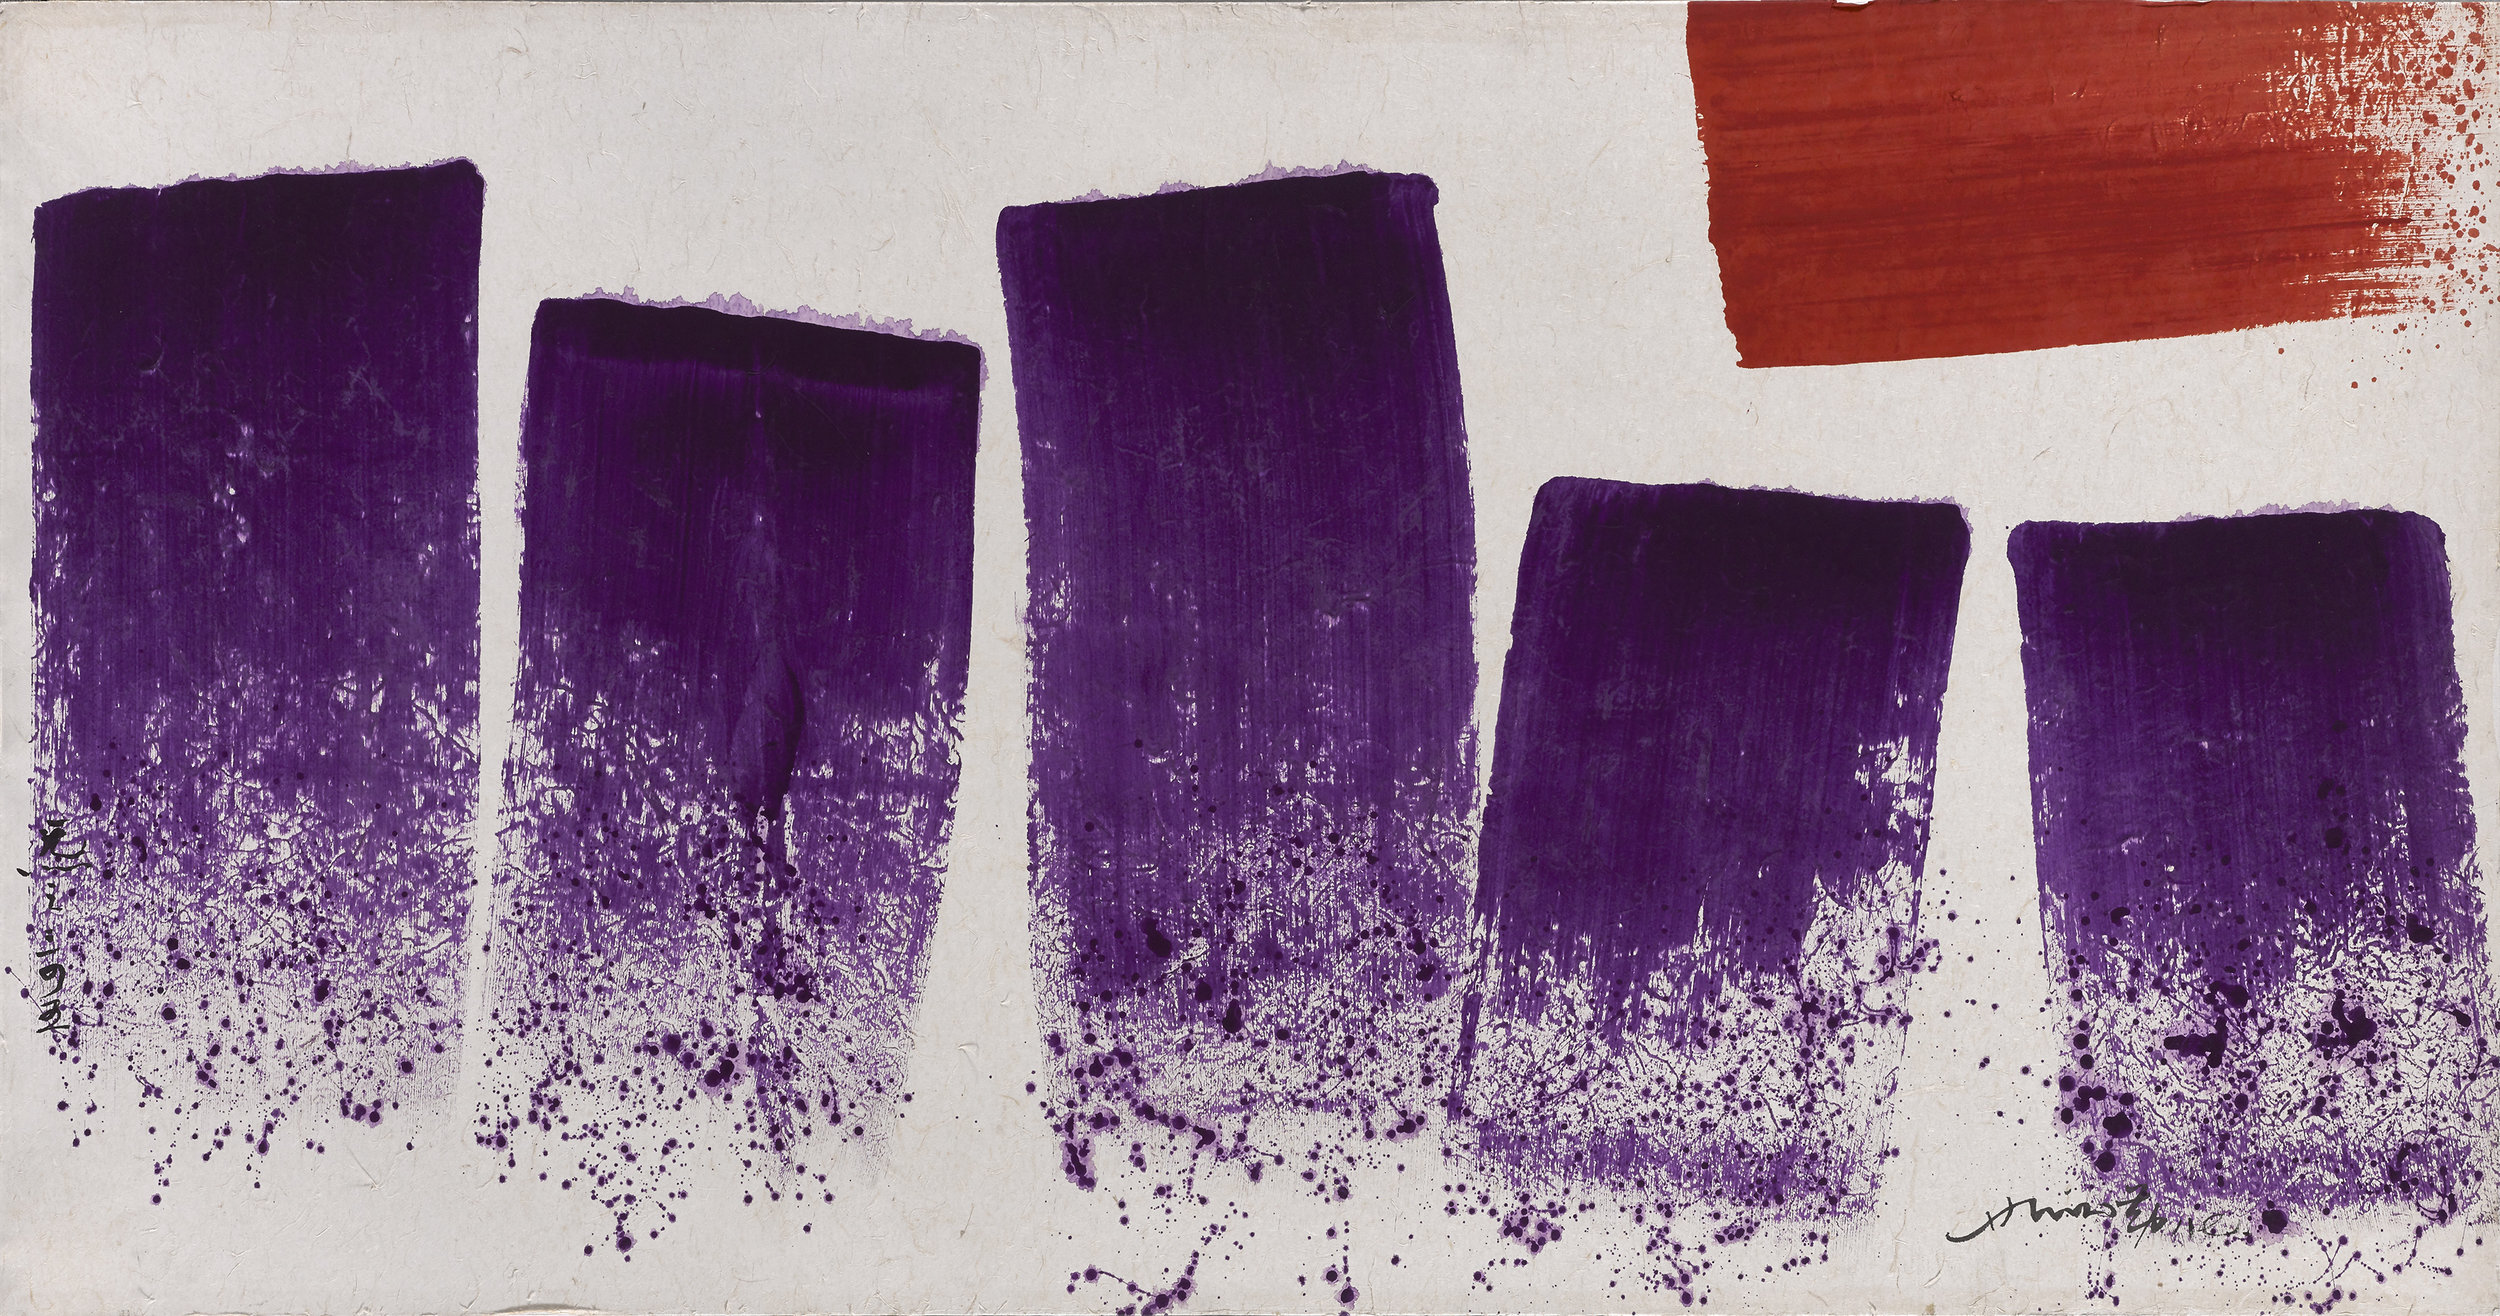 Hsiao Chin, Chi 3, acrylic on paper, 74 x 141 CM, 1987